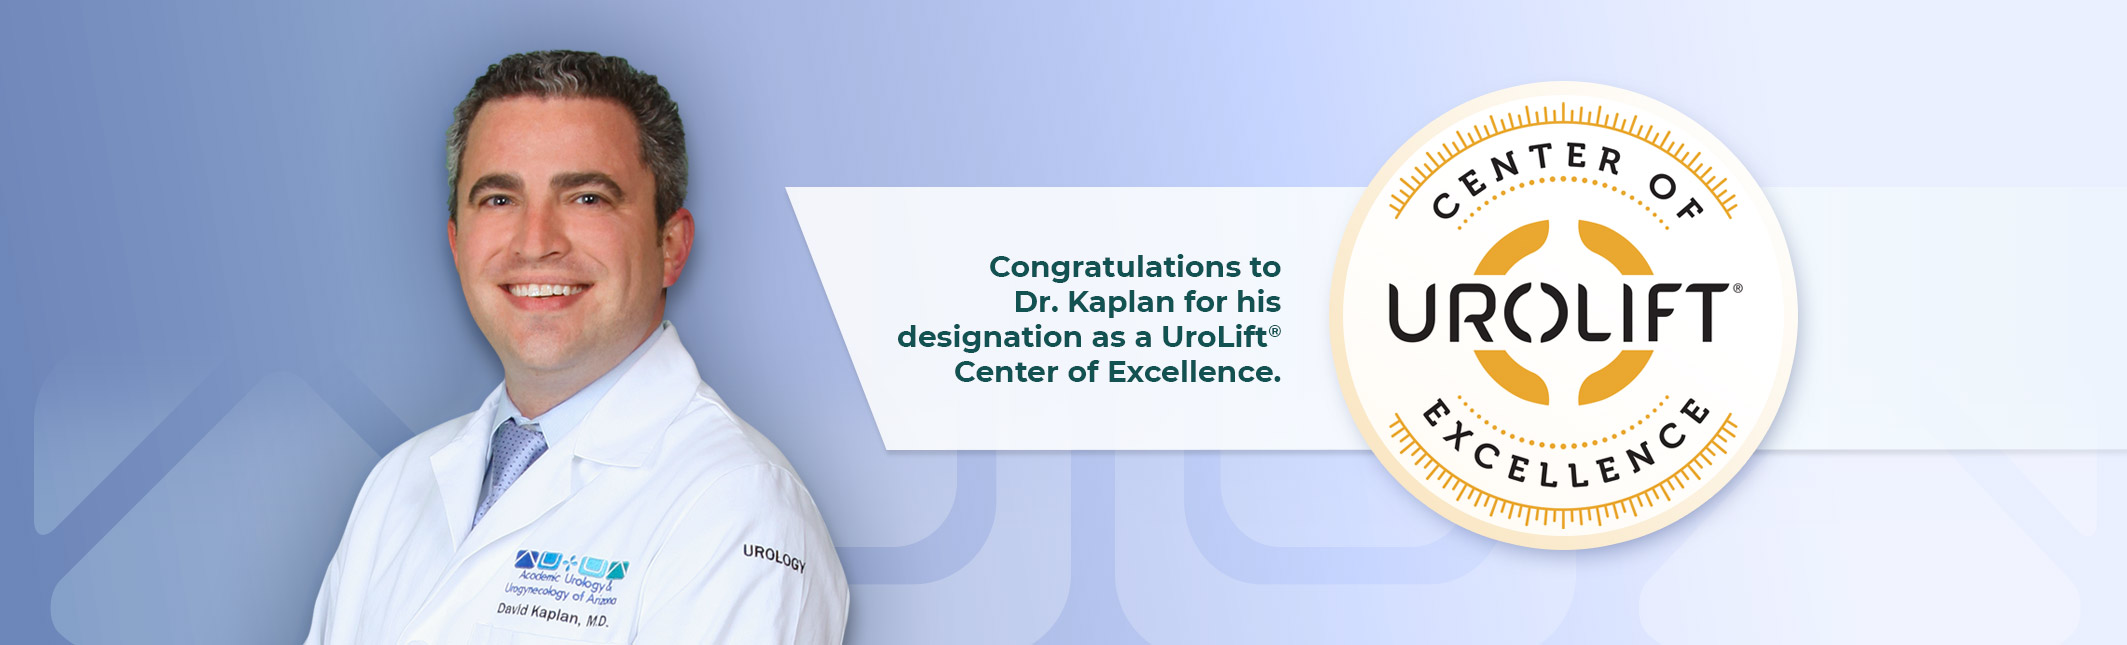 Congratulations to Dr. Kaplan for his designation as a urolift center of excellence